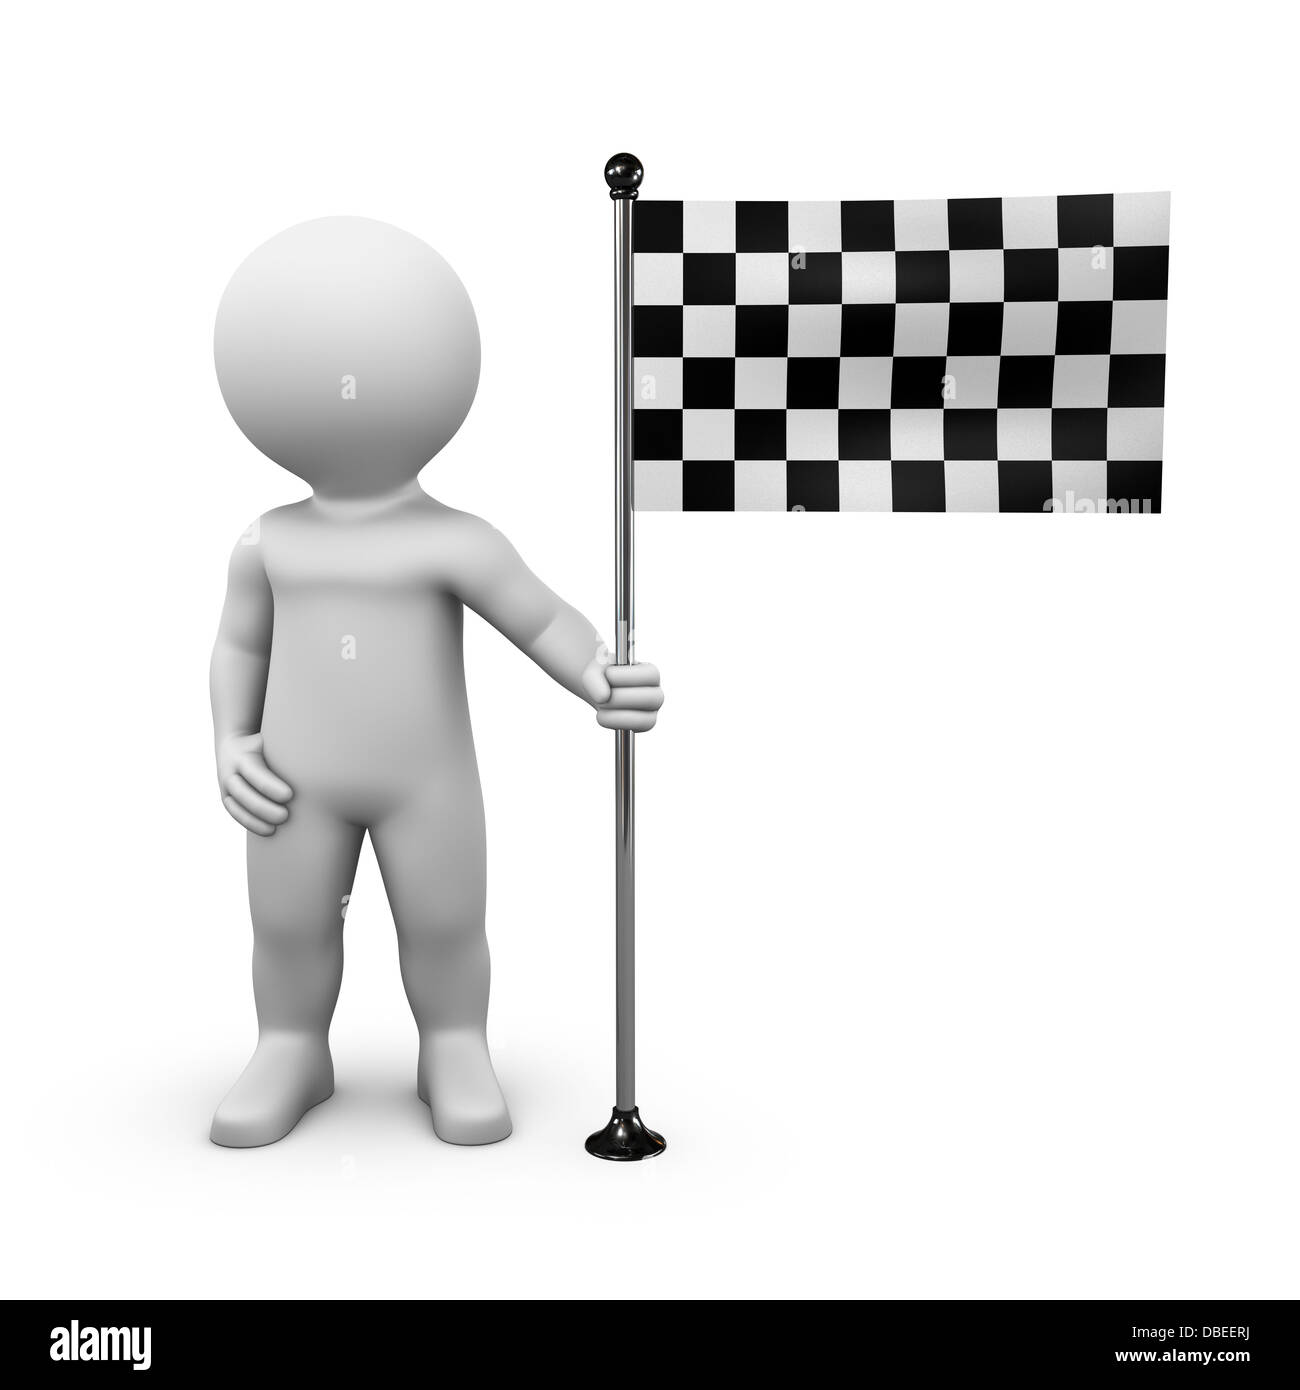 Bobby is presenting a goal flag on a flagpole - Stock Image